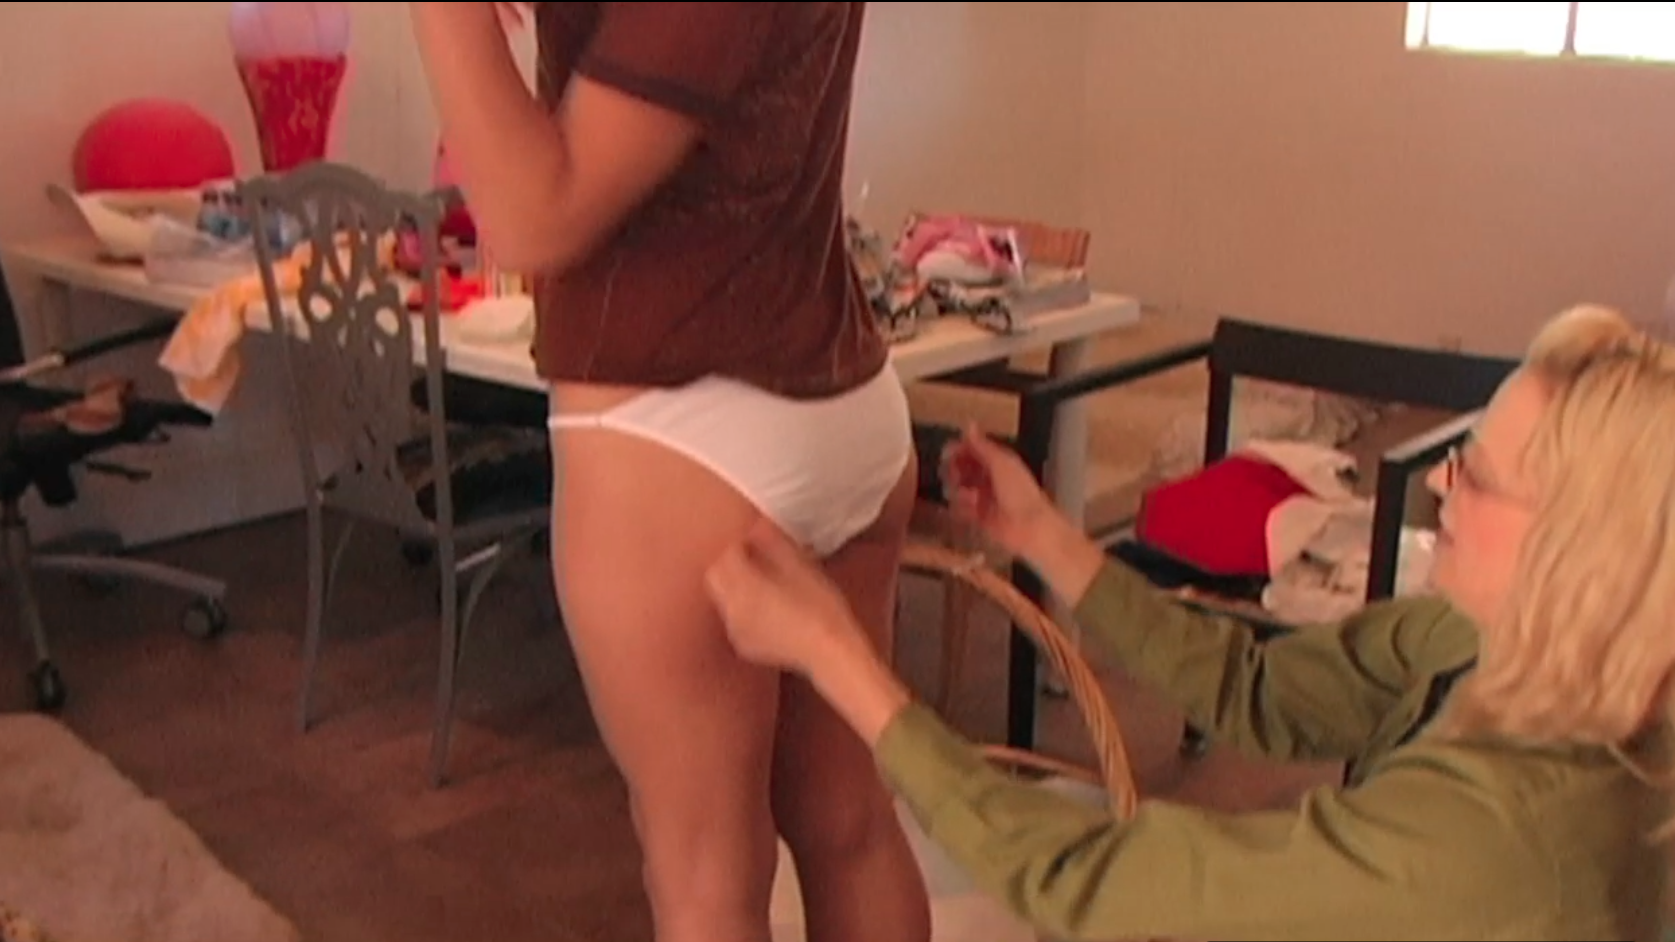 BARELEY LEGAL ADULT VIDEO ACTRESS TRYING ON THE ICONIC WHITE PANTIES. PHOTO BY JENNA ROSHER